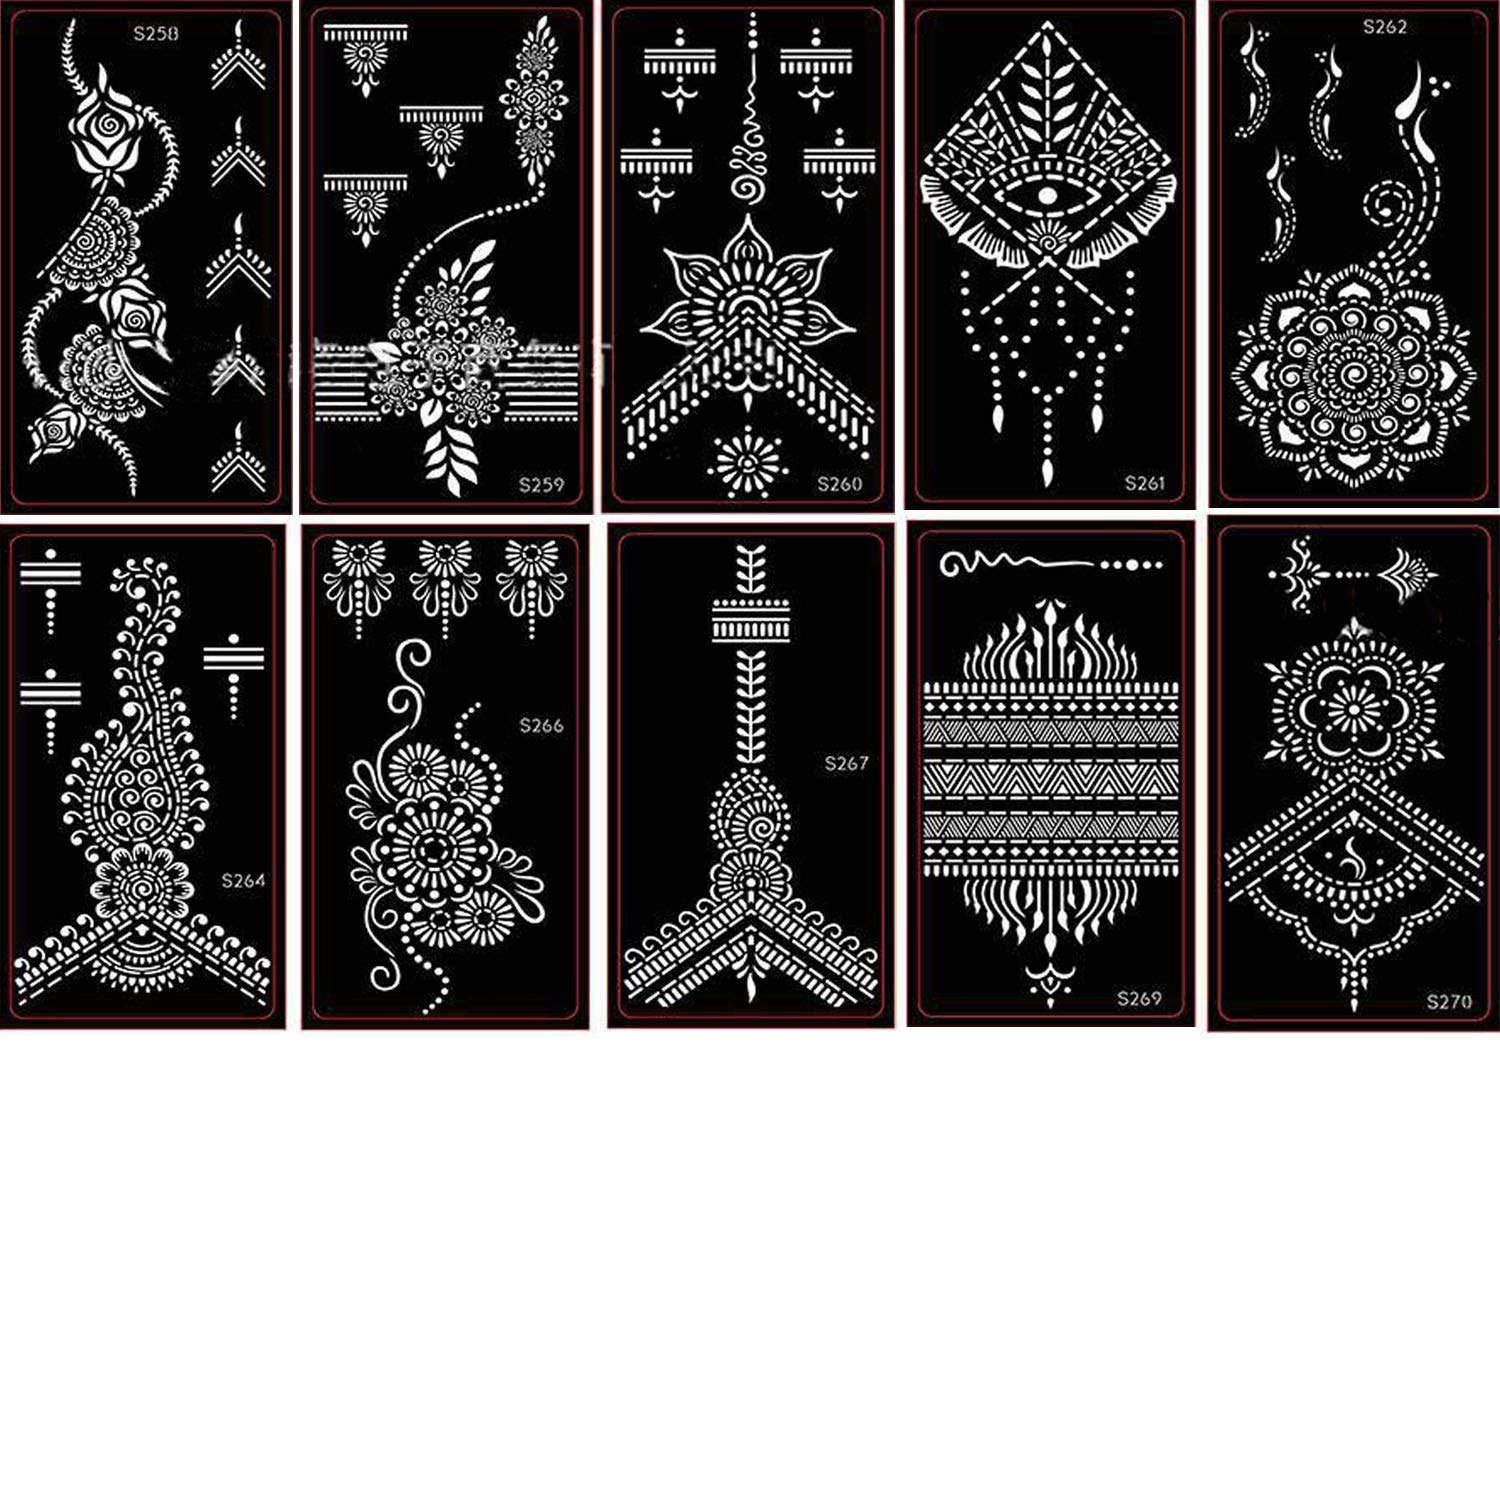 Henna Tattoo Stencil - Glitter Temporary Tattoo Temples for Women Girls,Indian Henna Tattoo Sticker Kit for Self-Adhesive Beautiful Body and Hands Art Painting(10 Sheets)